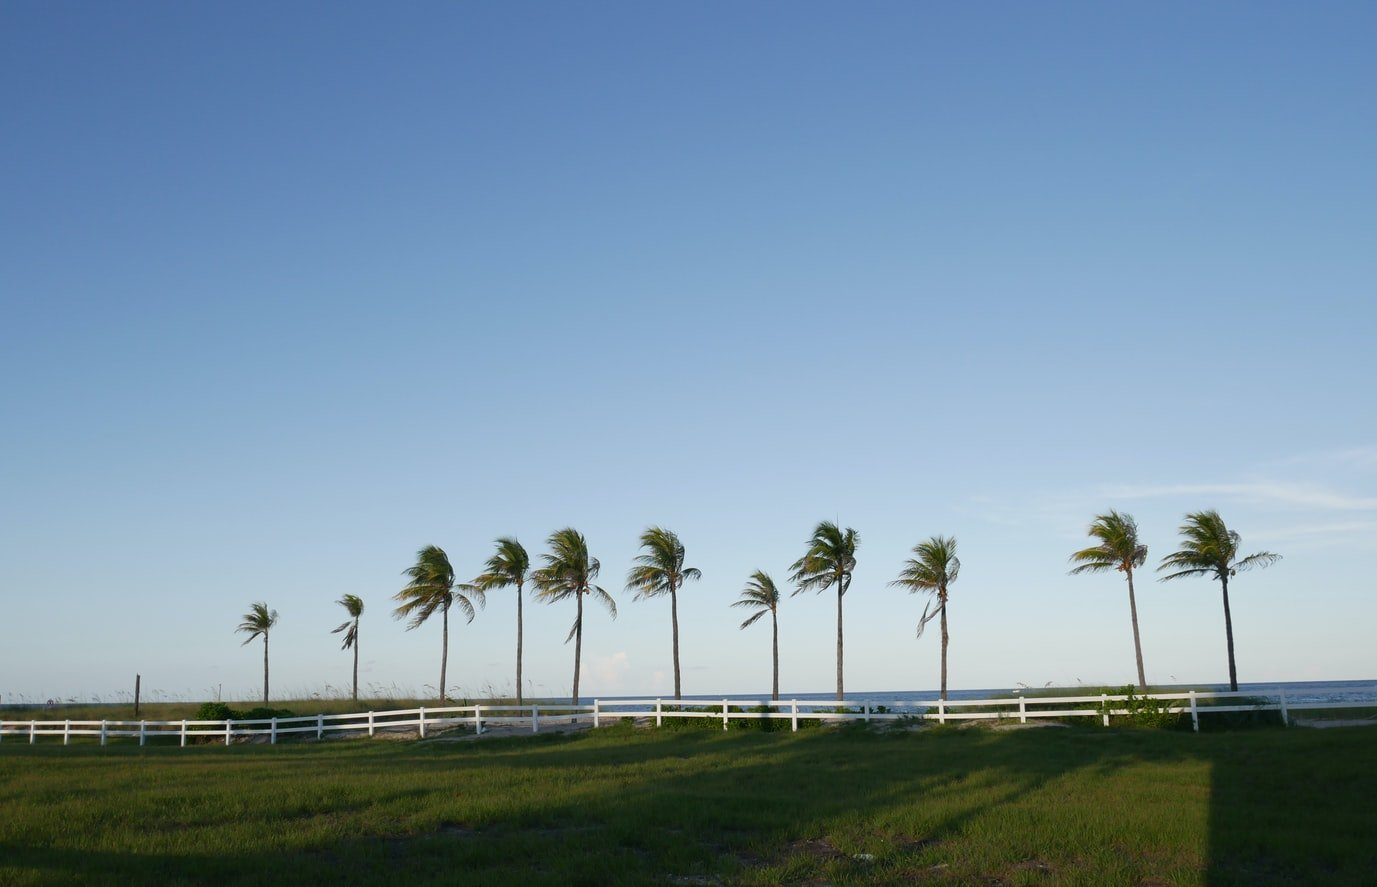 Palm trees swaying by the sea in Fort Lauderdale, Florida.